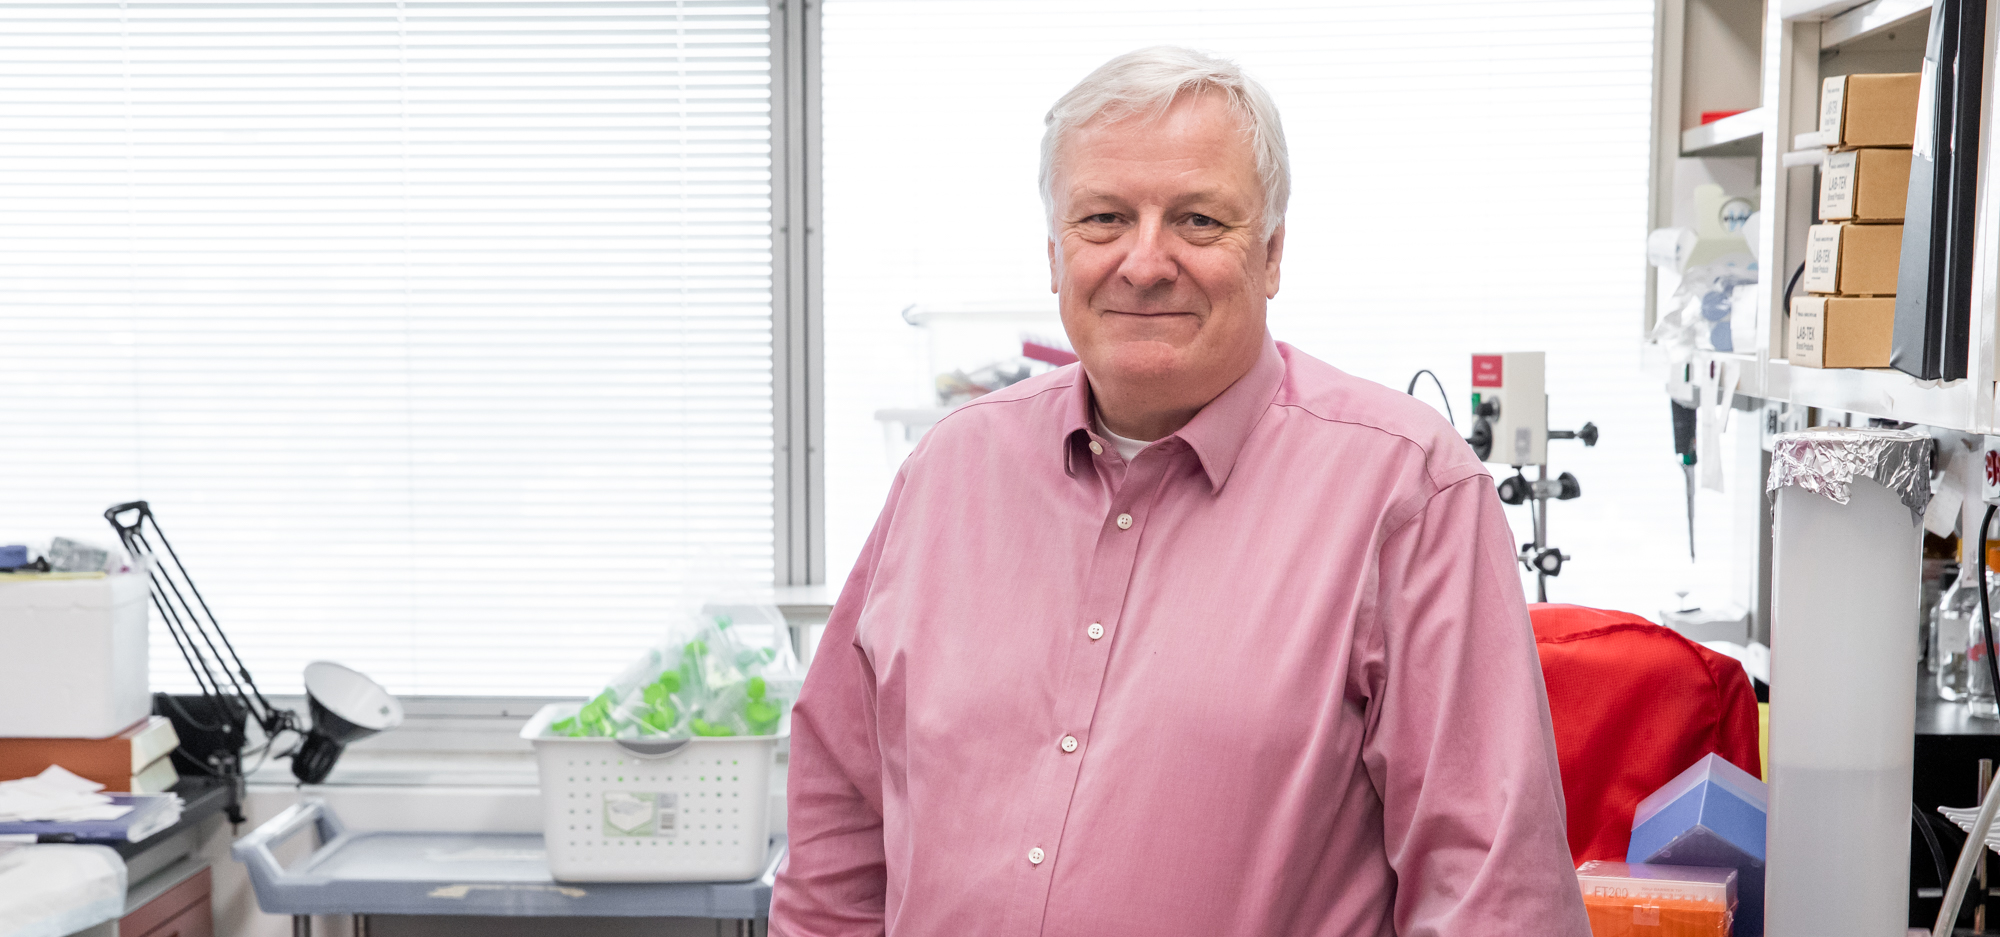 Distinguished Toronto scientist Dr. Jim Woodgett takes up leadership of Terry Fox Research Institute on August 1